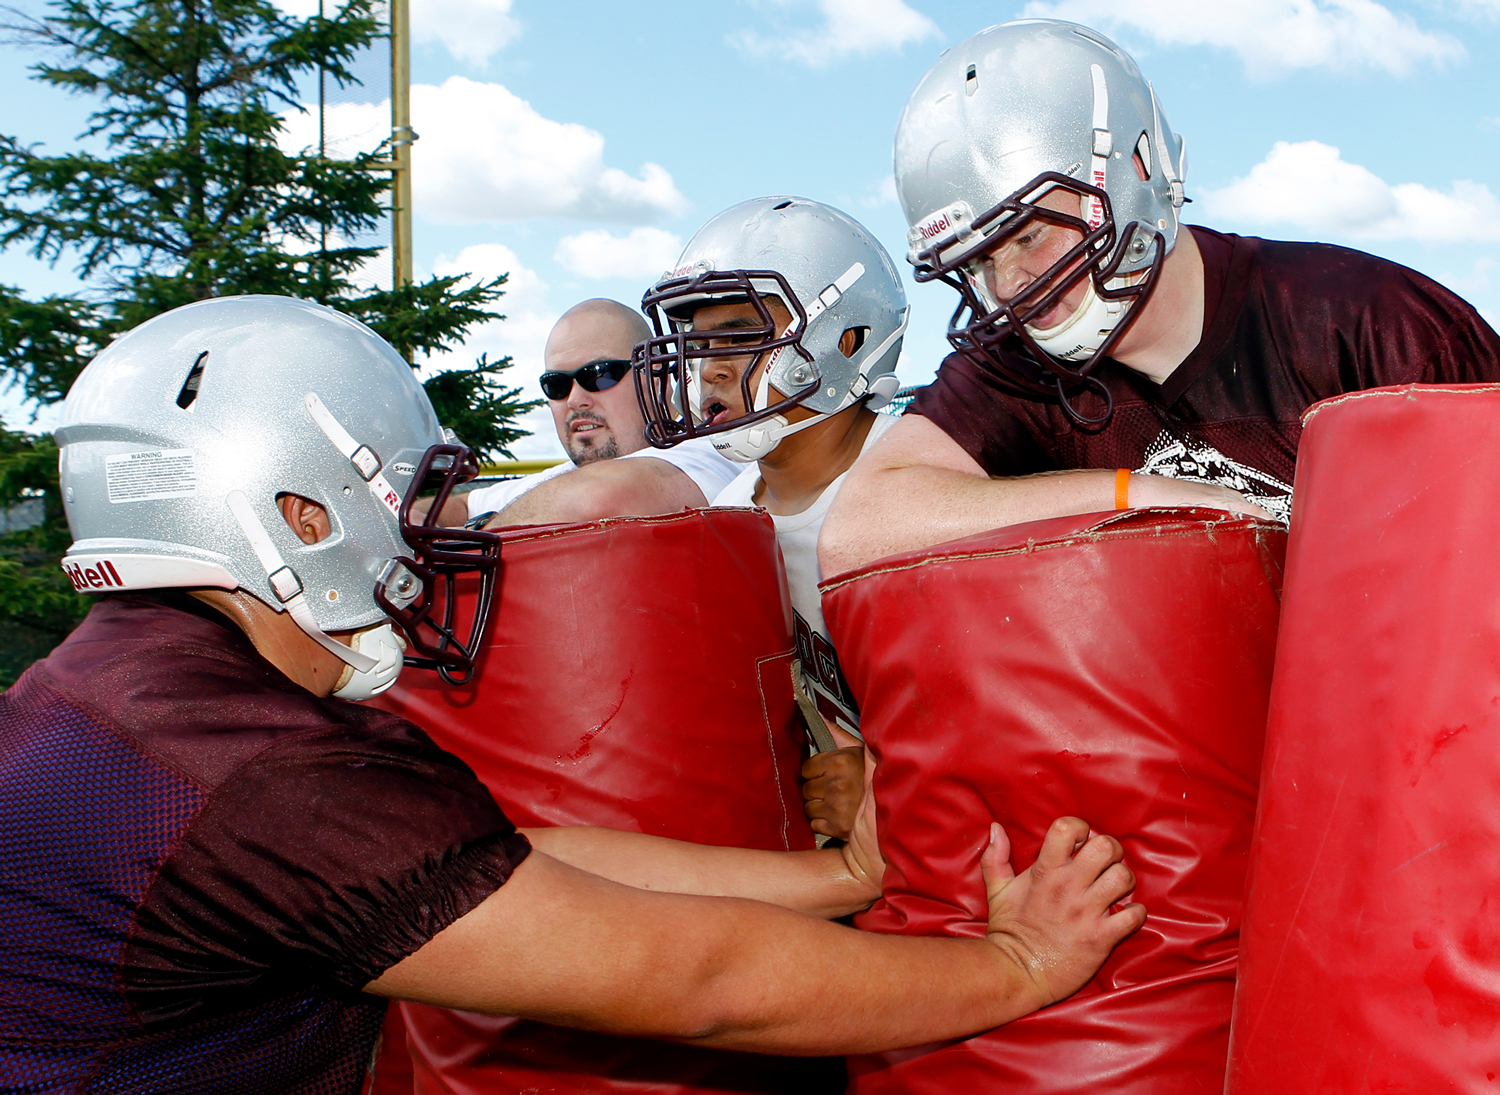 football-camp-photographer-madison-wi-ruthie-hauge-photography.jpg